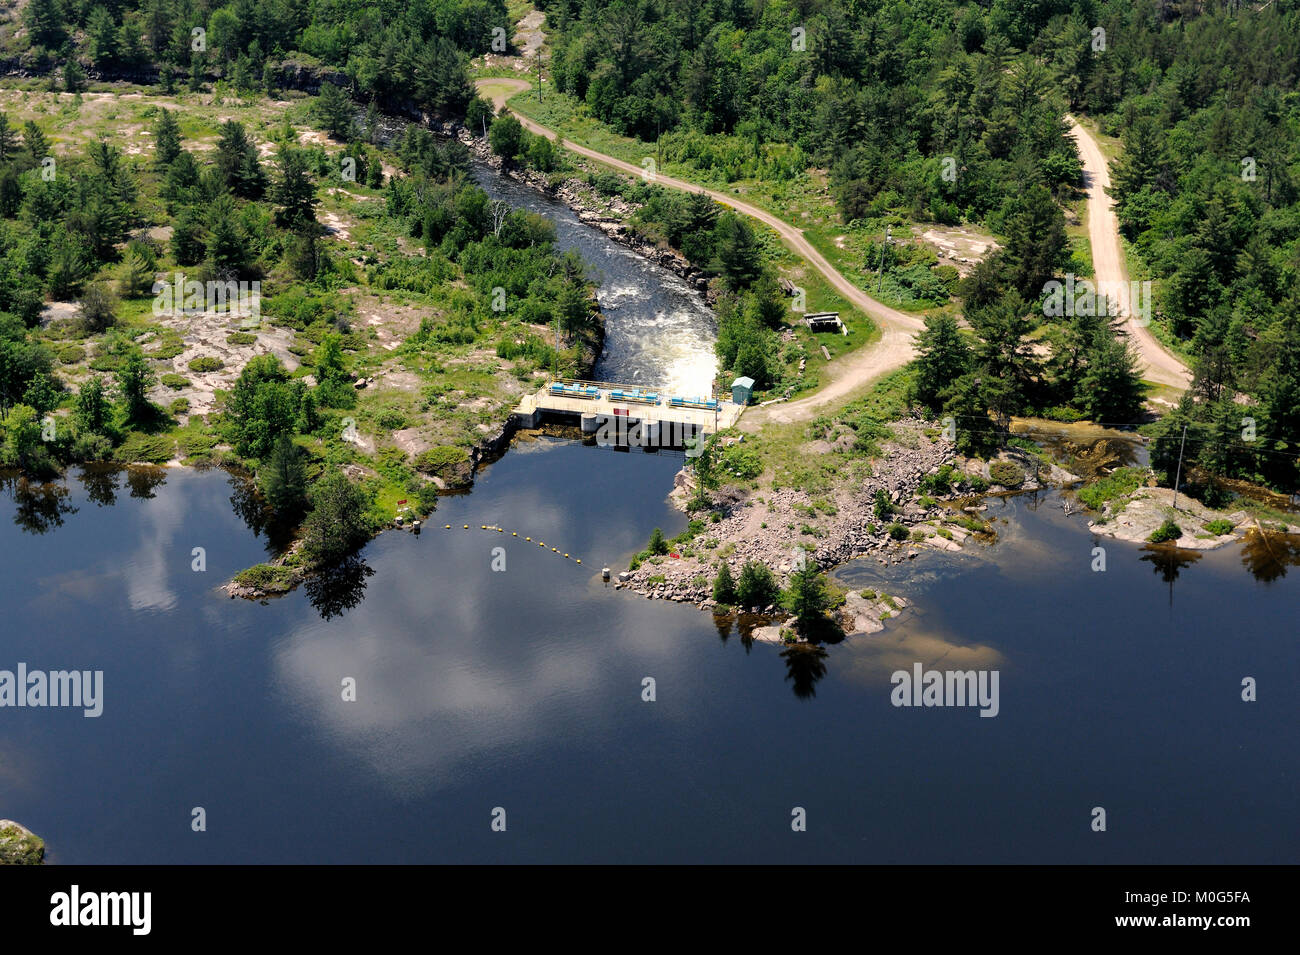 This is an aerial photograph of the portage dam which controls the flow of water between lake Nipissing and the - Stock Image